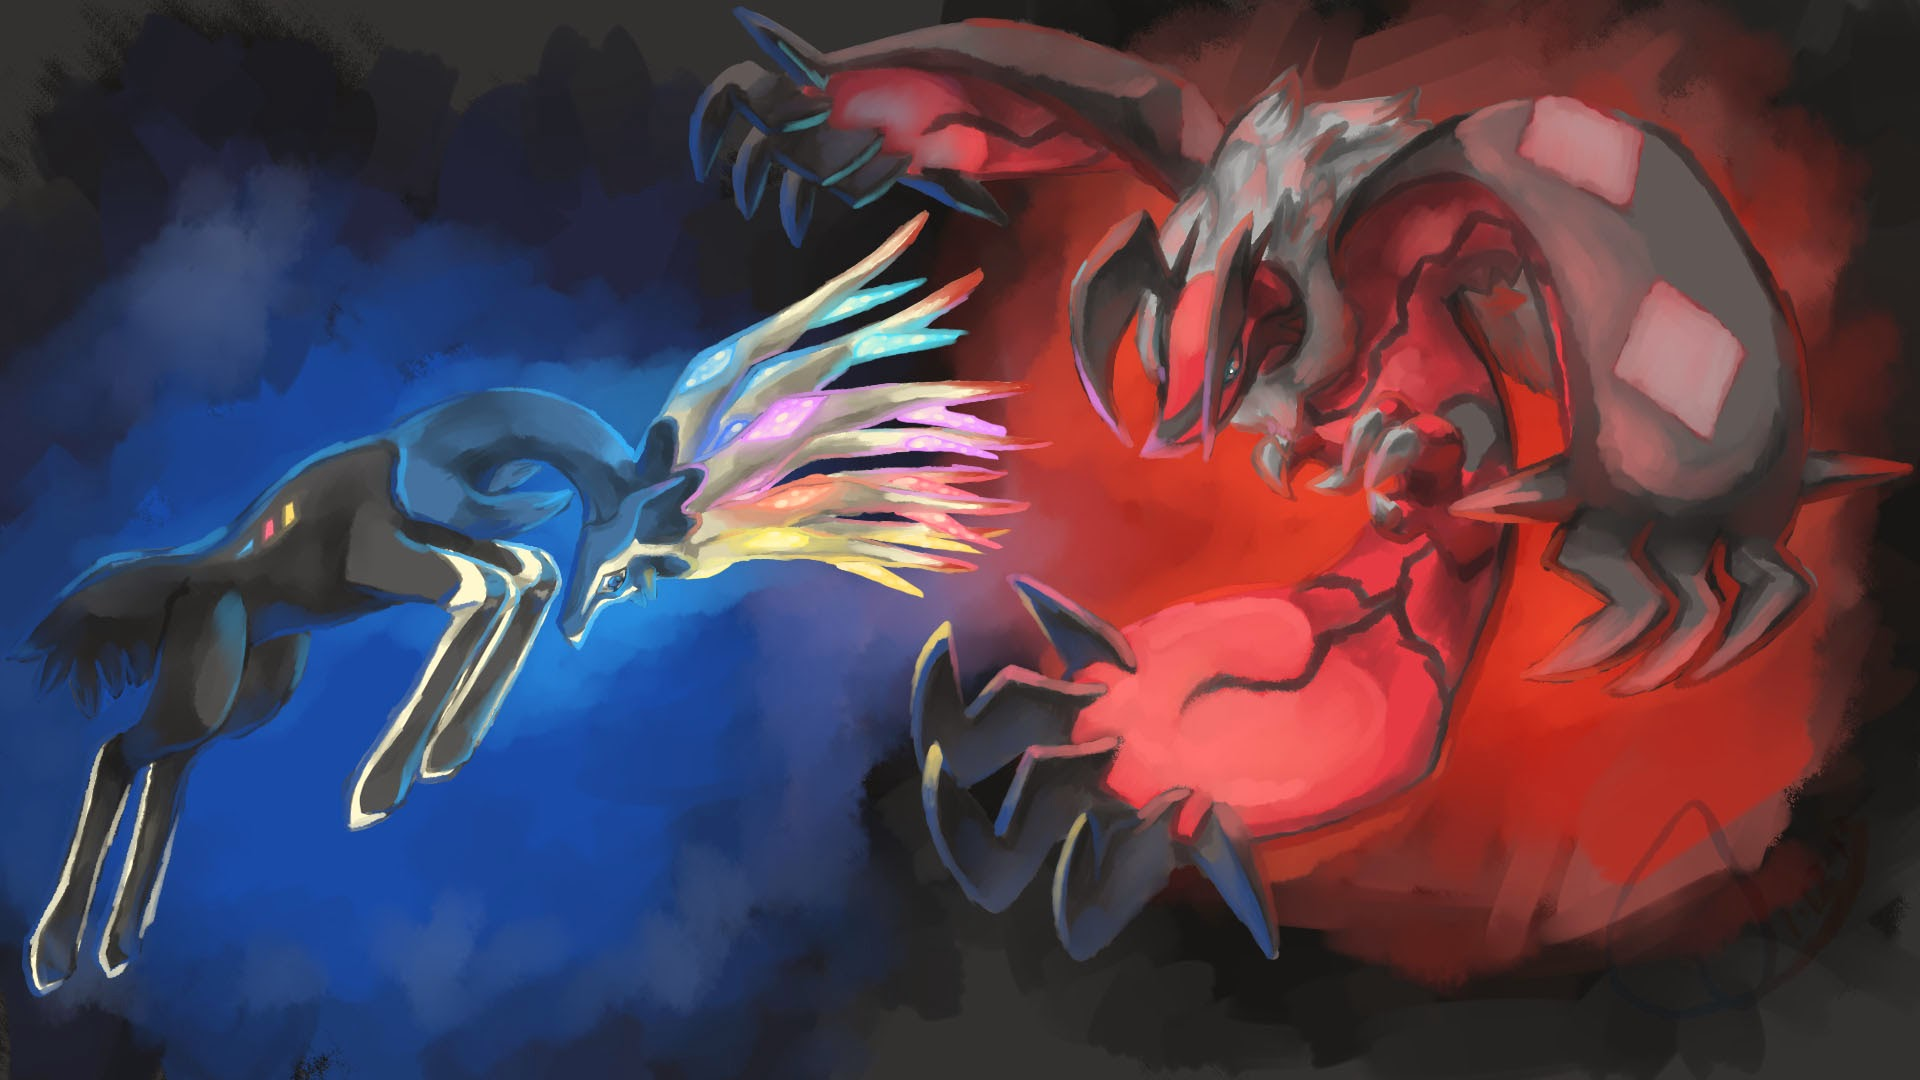 ... deviant art anime hd wallpaper ... Xerneas And Yveltal And Zygarde